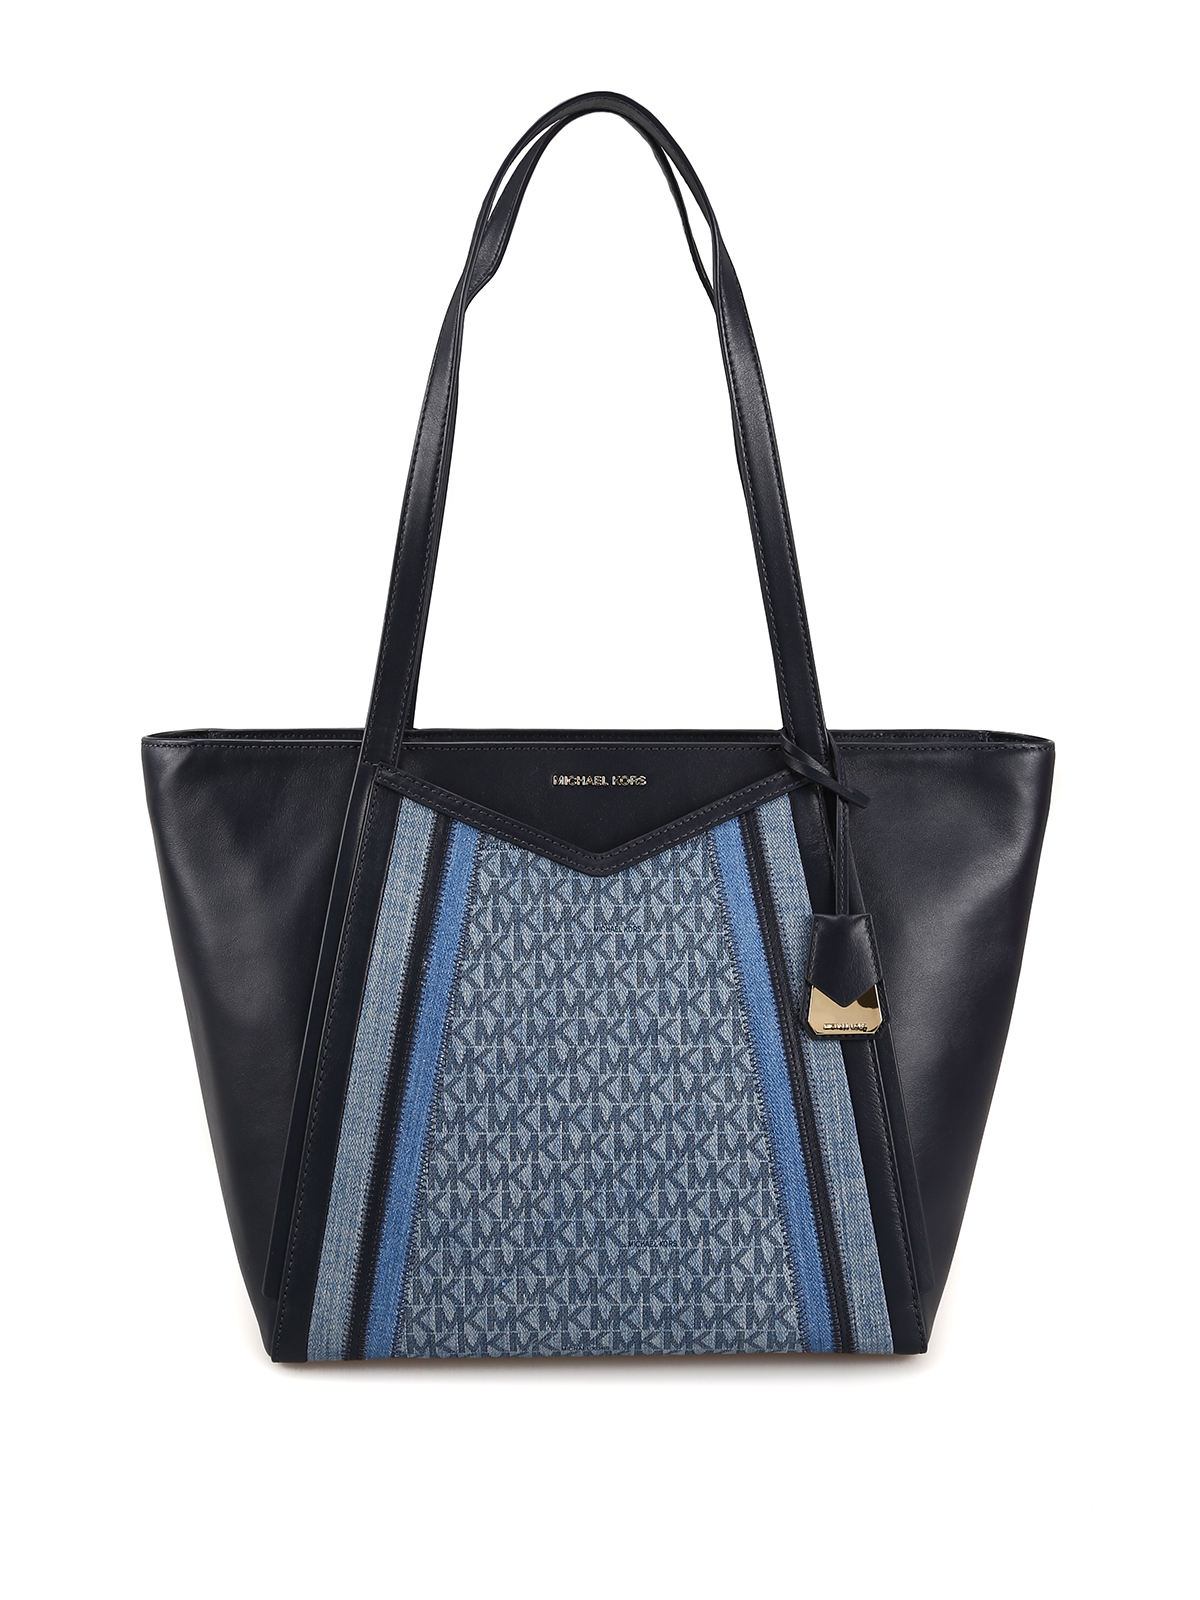 1a617a4747d0 Michael Kors - Whitney leather and denim large tote - totes bags ...